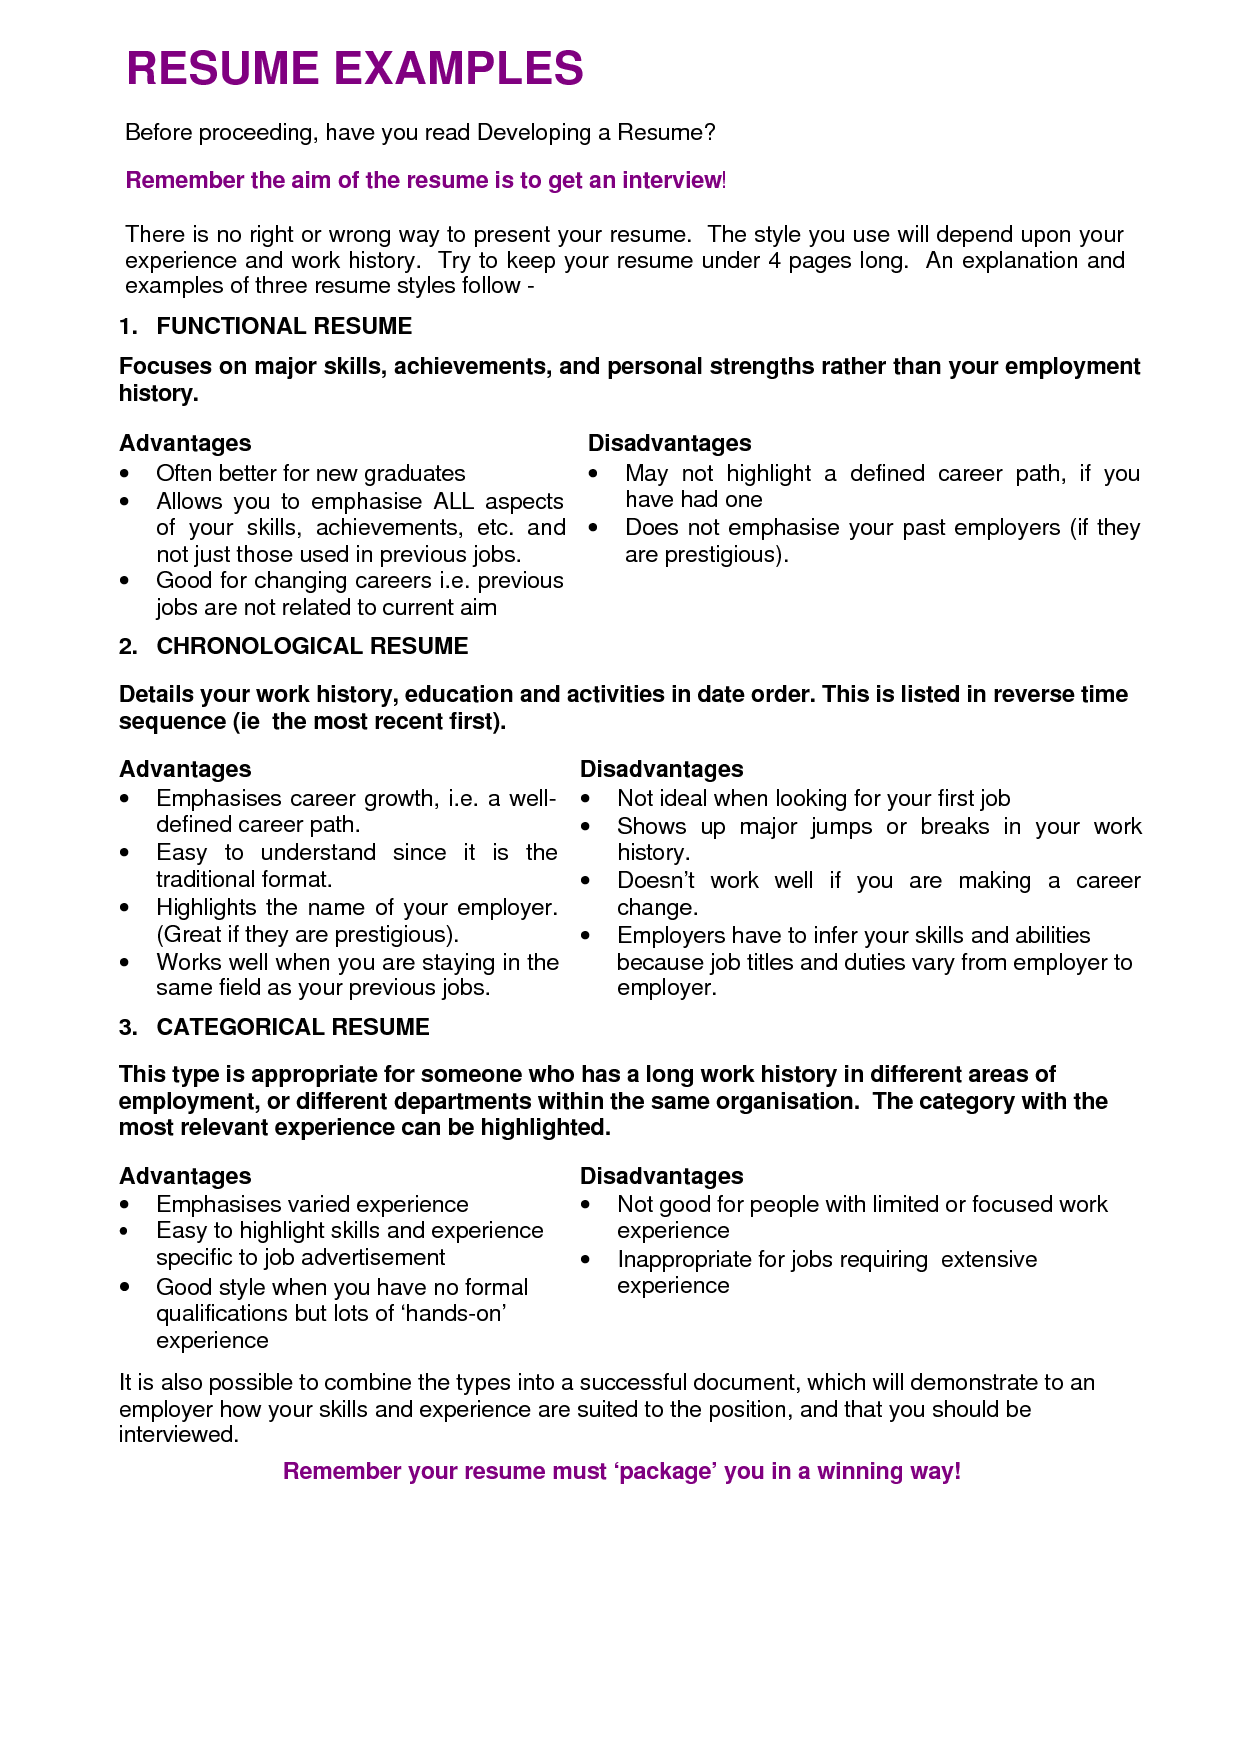 resume objective examples best templateresume objective examples resume objective examples best templateresume objective examples application letter sample